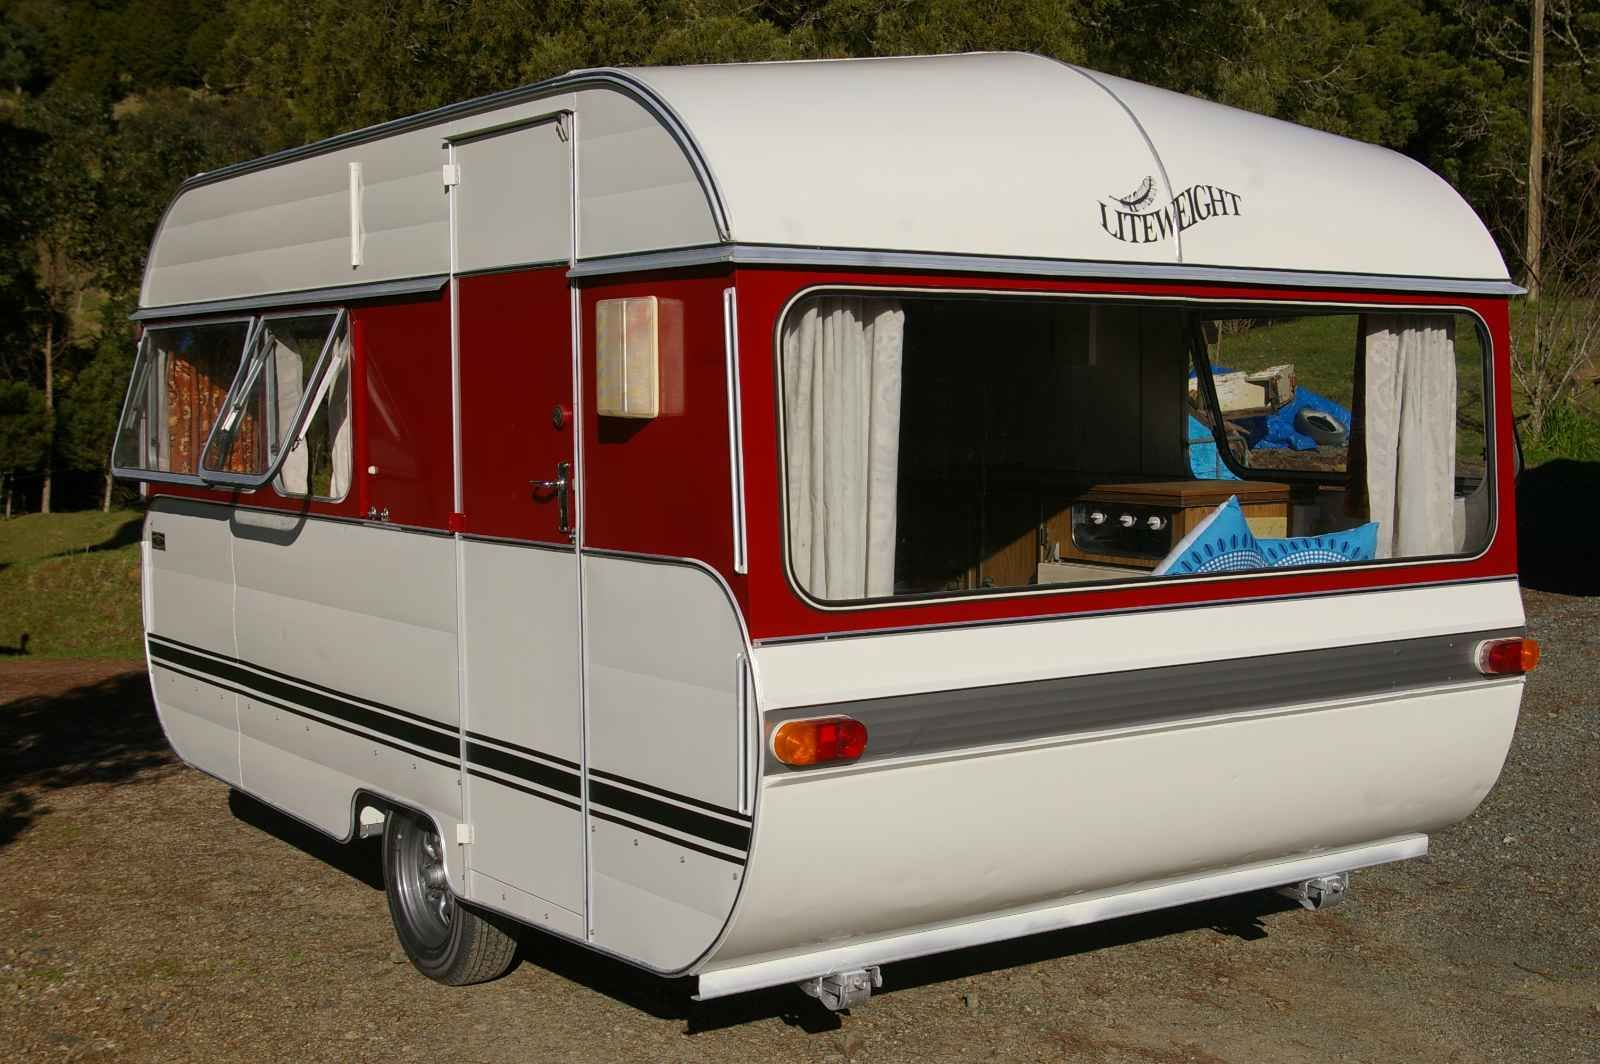 1976 LiteWeight 1300 12ft 6inch Designed to be towed by a